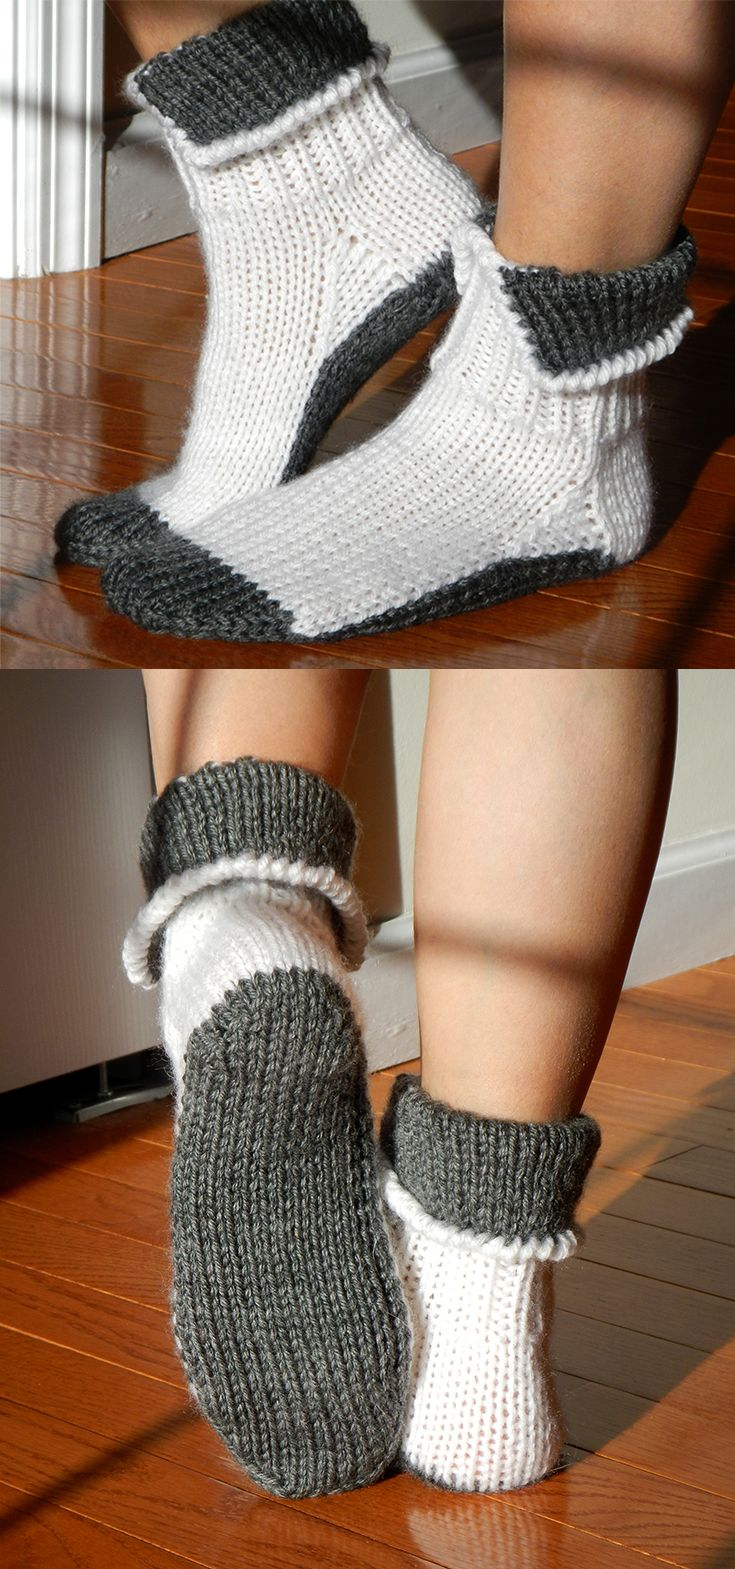 Ankle length socks in two colours. Tricky part is to connect the two colours seamlessly.